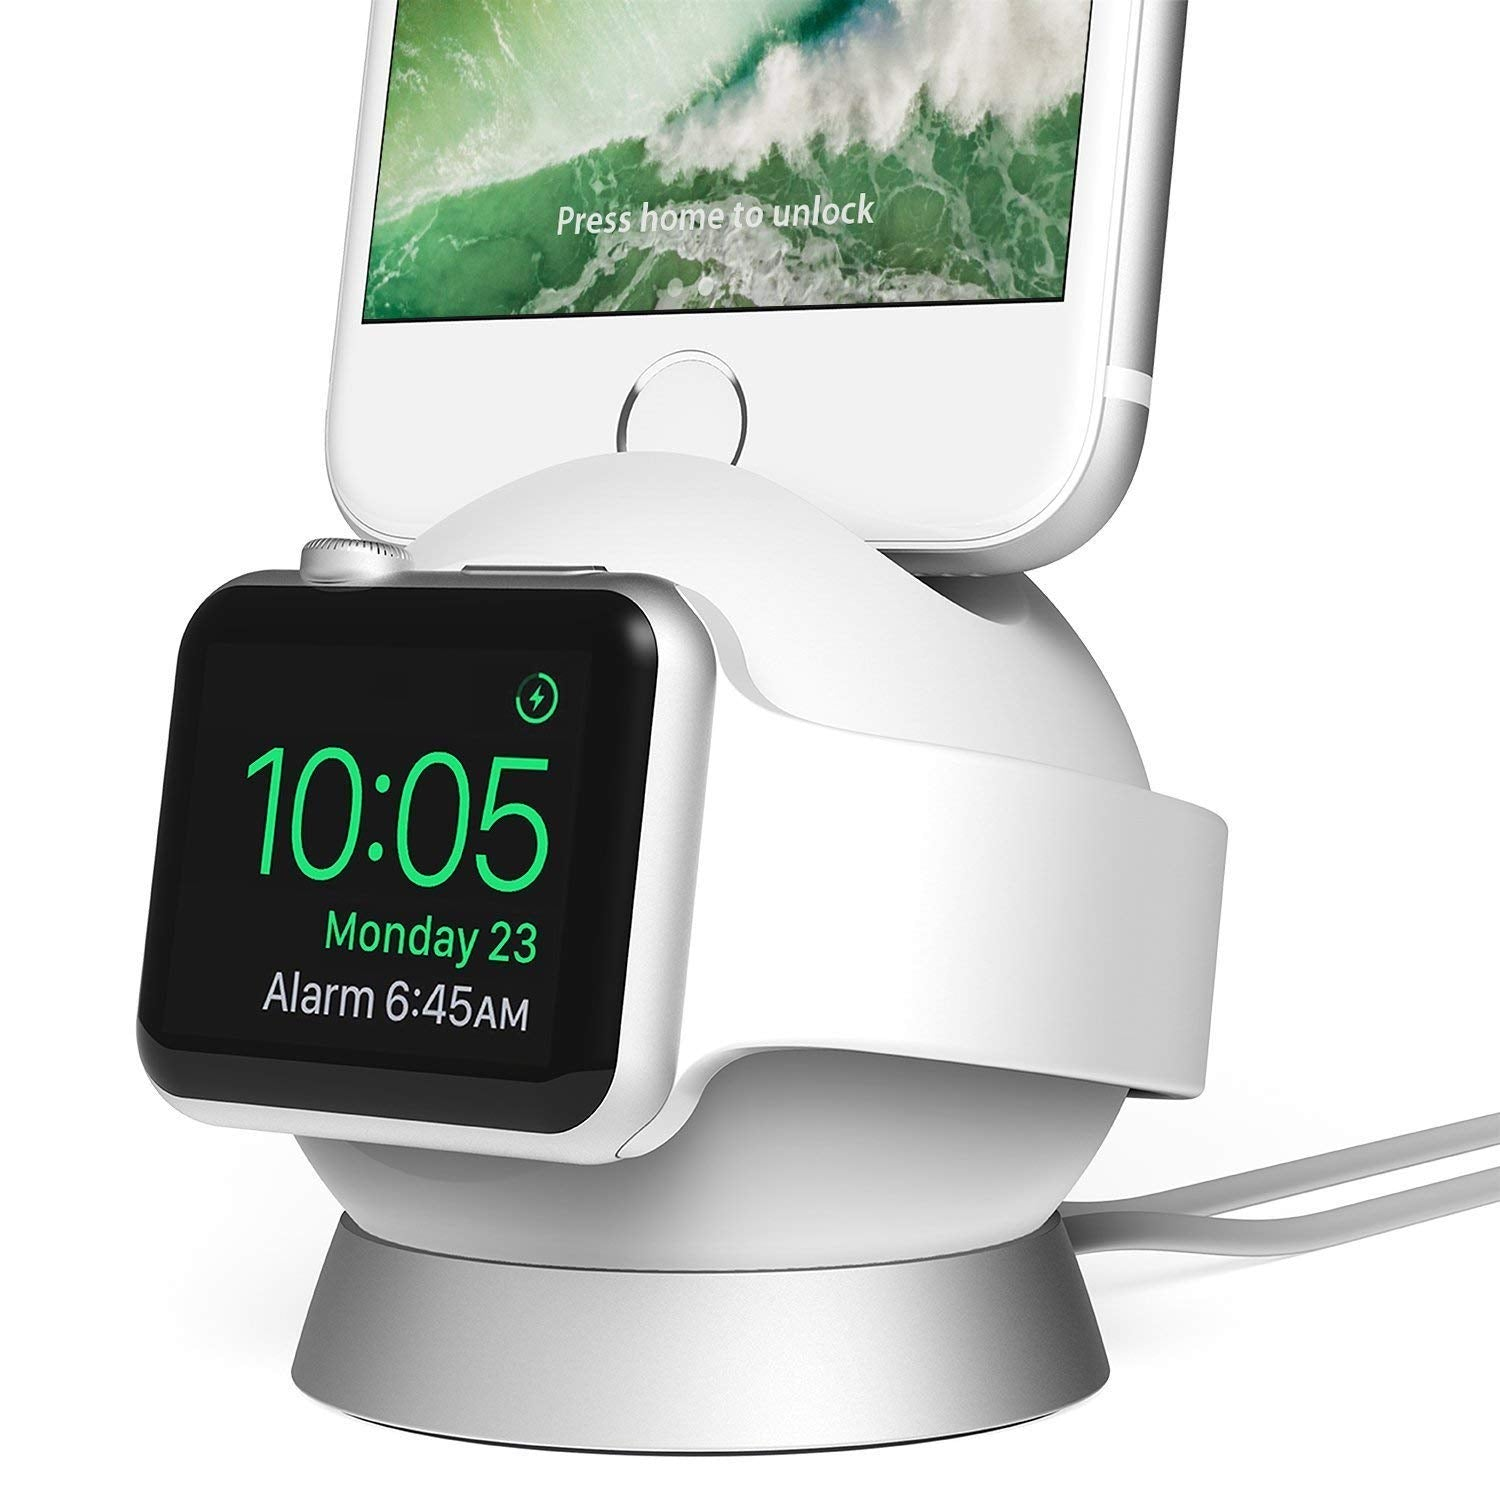 iOttie OmniBolt Apple Watch Stand, iPhone Docking Station for Apple Watch Series 2, 1, iPhone 7s Plus, 7s, 6s, SE, 6